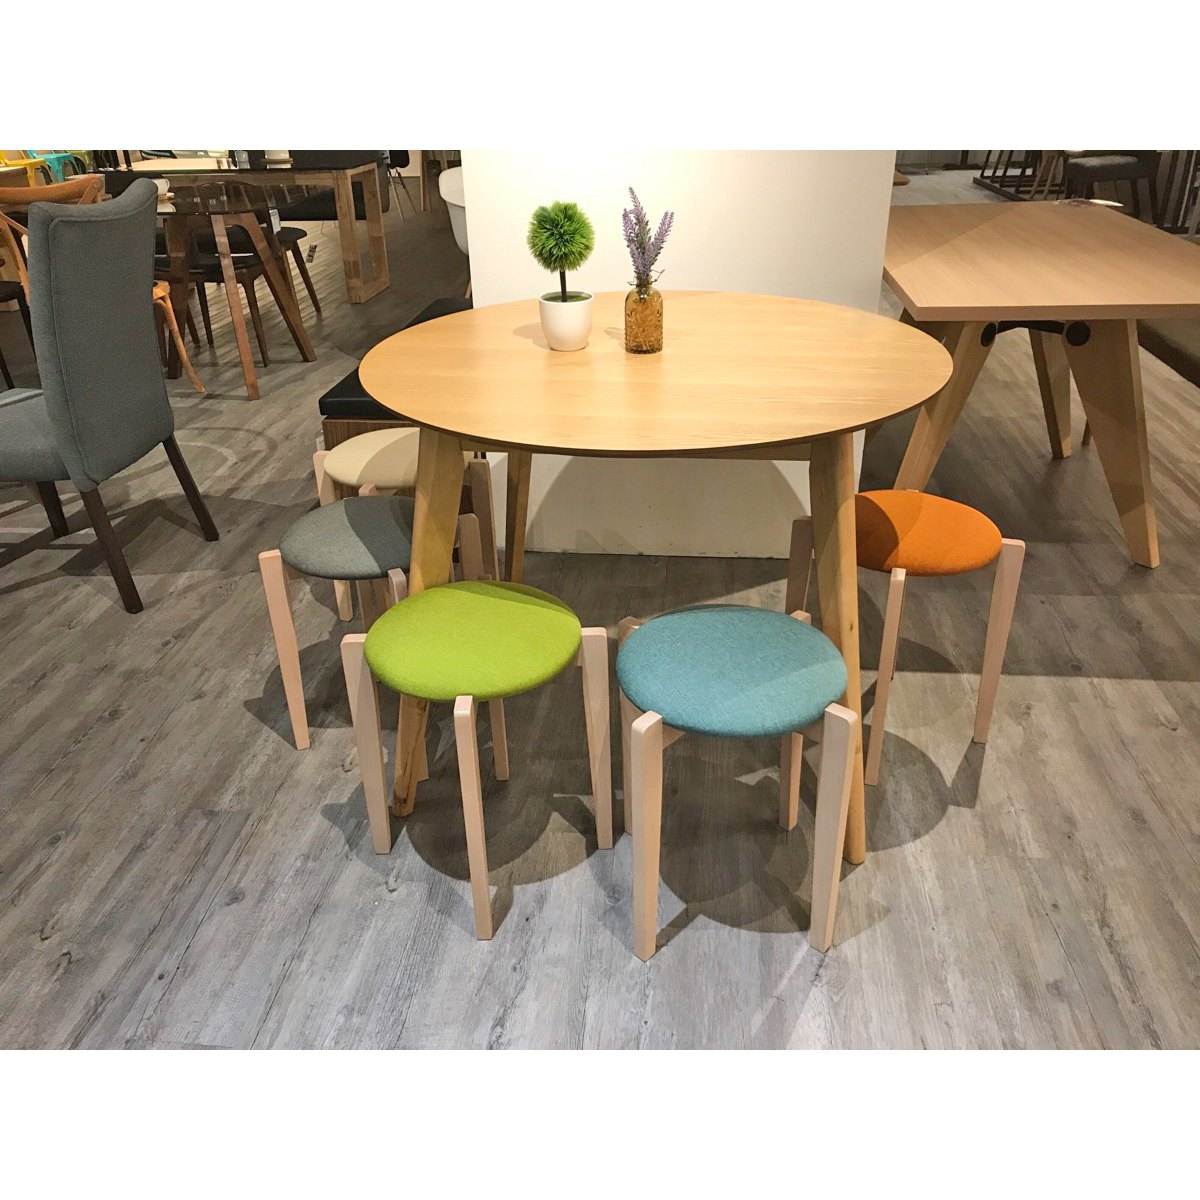 Hover Round Chairs Oakland Round Dining Table Dia1000 Comfort Design The Chair